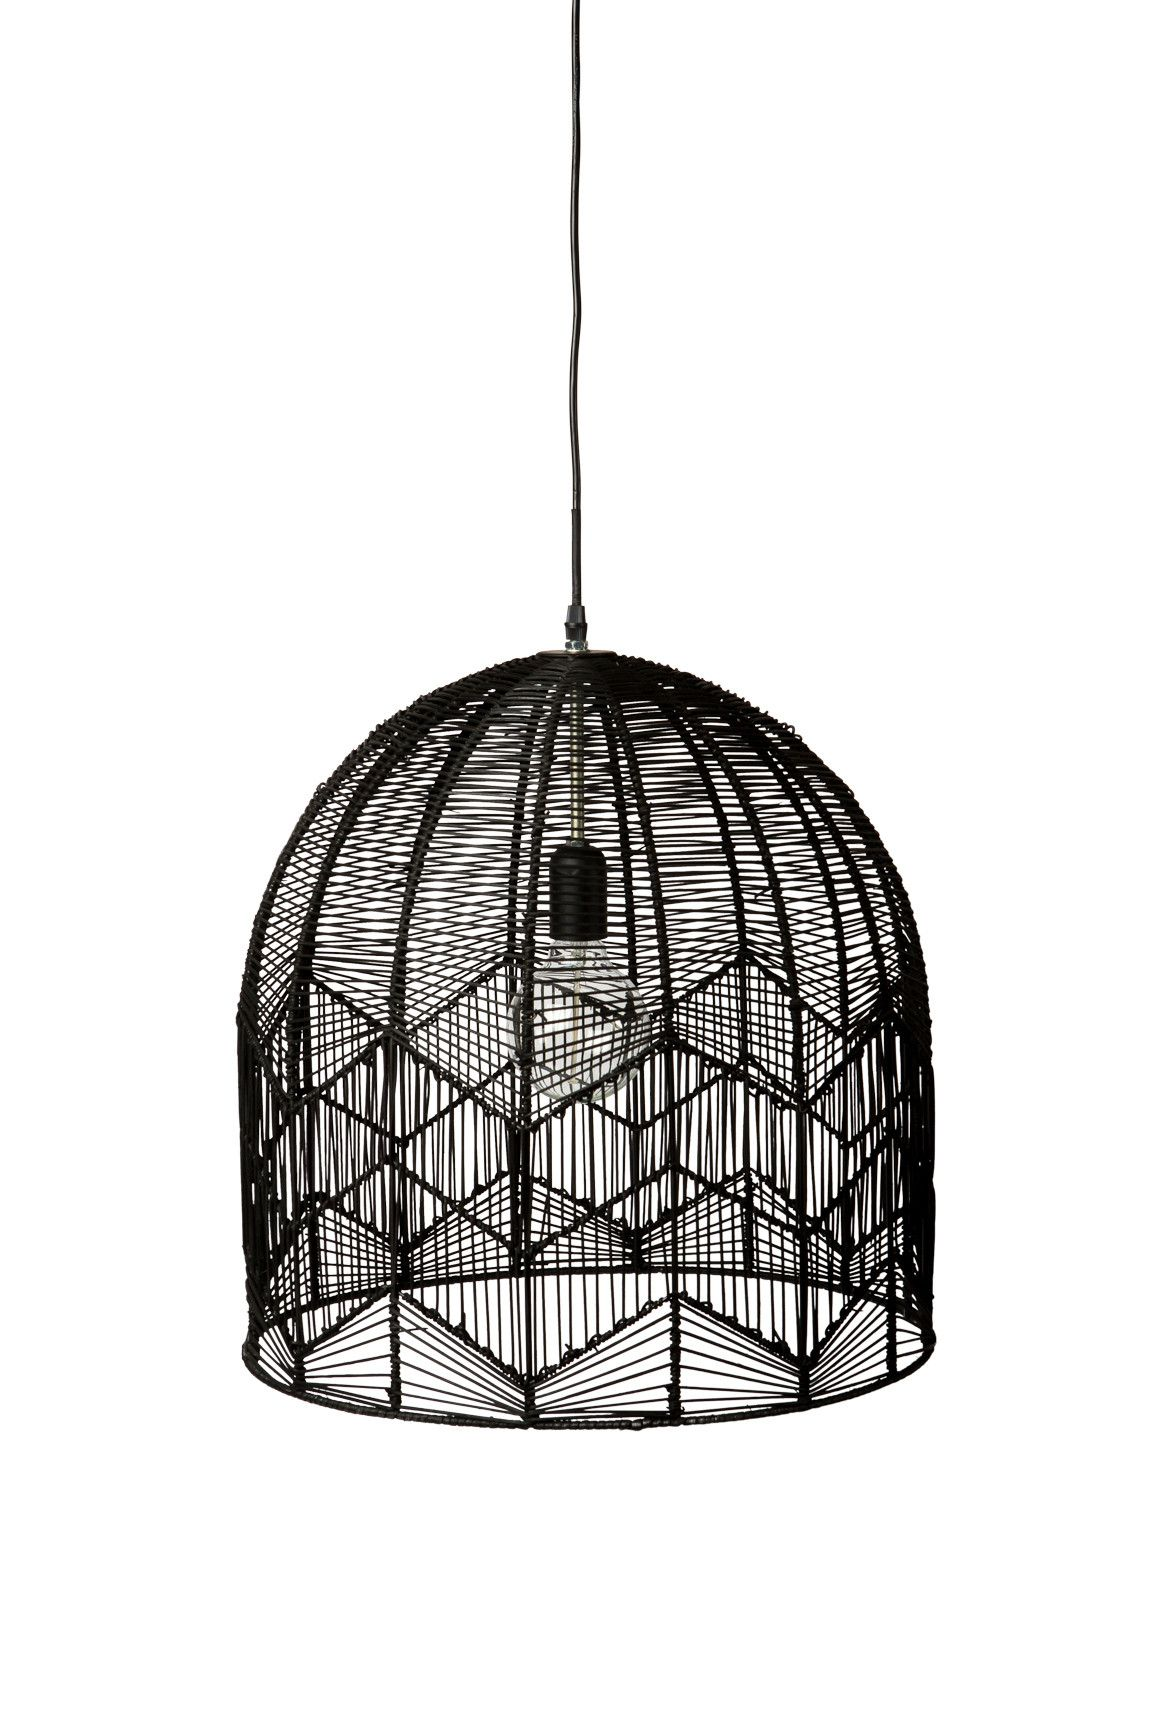 Lace Rattan Light Black Pendant Light Lace Pendant Black Pendant Light